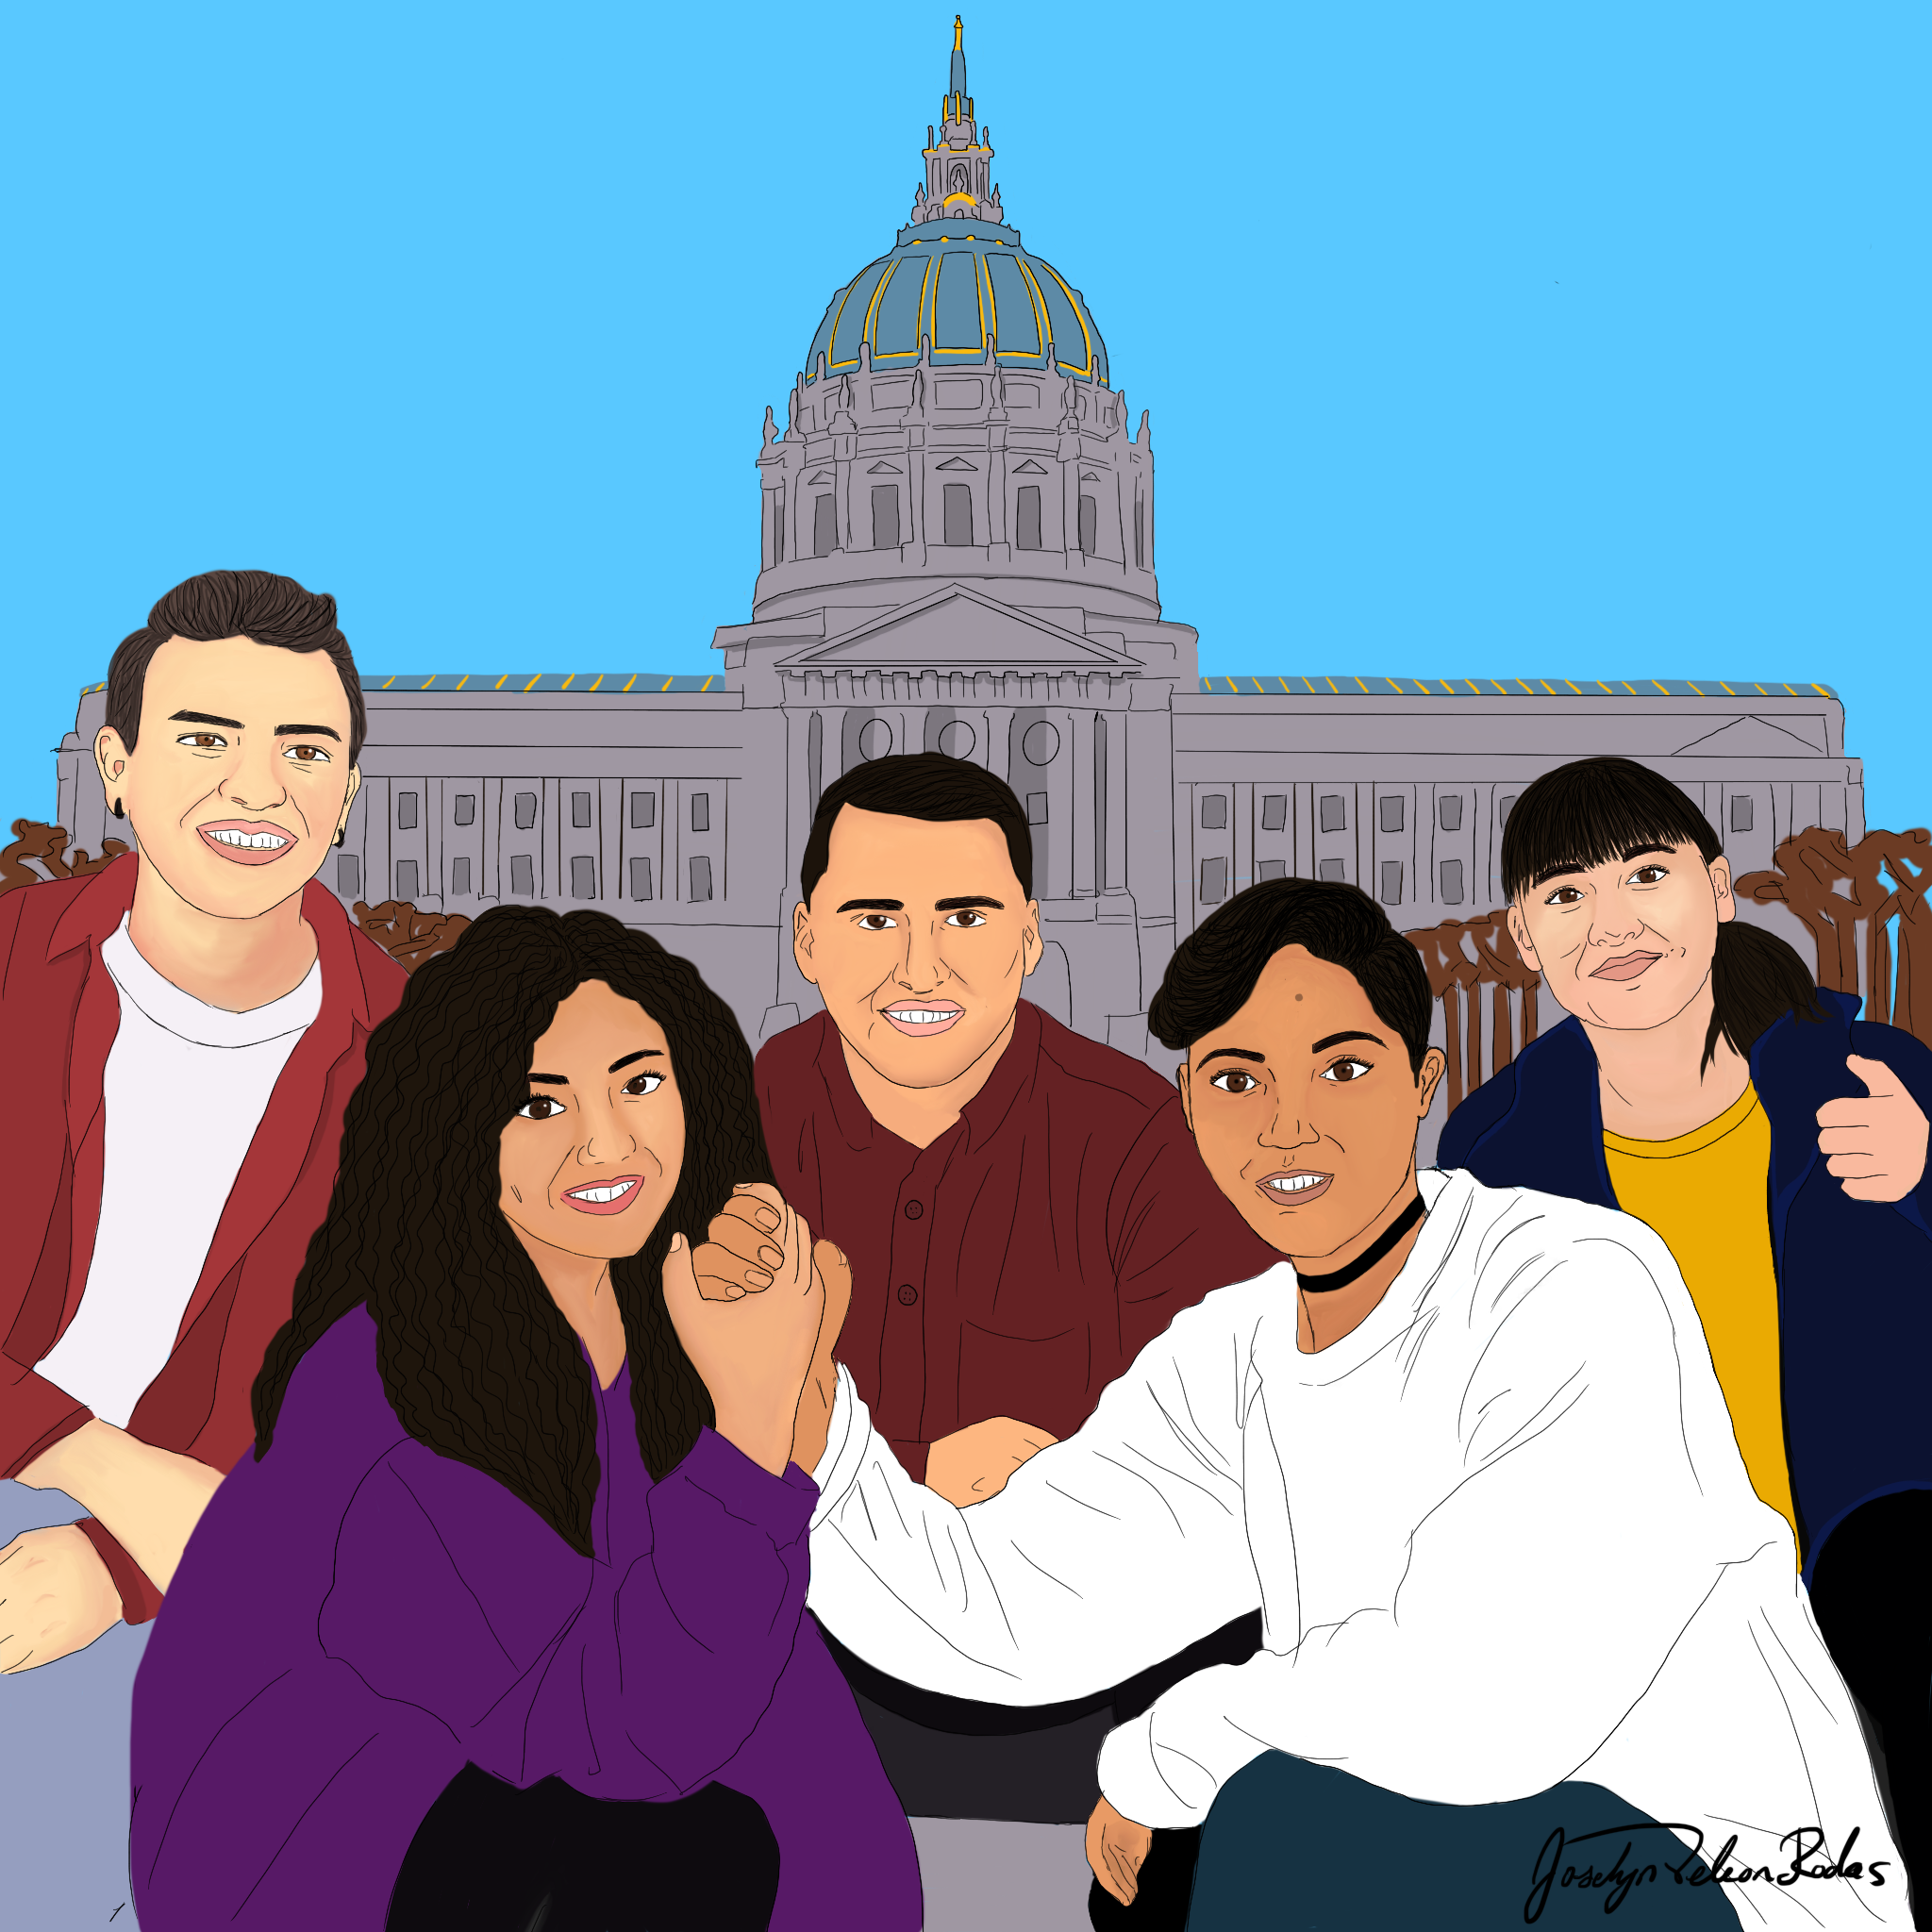 Illustration of 5 young people with San Francisco City Hall in the background